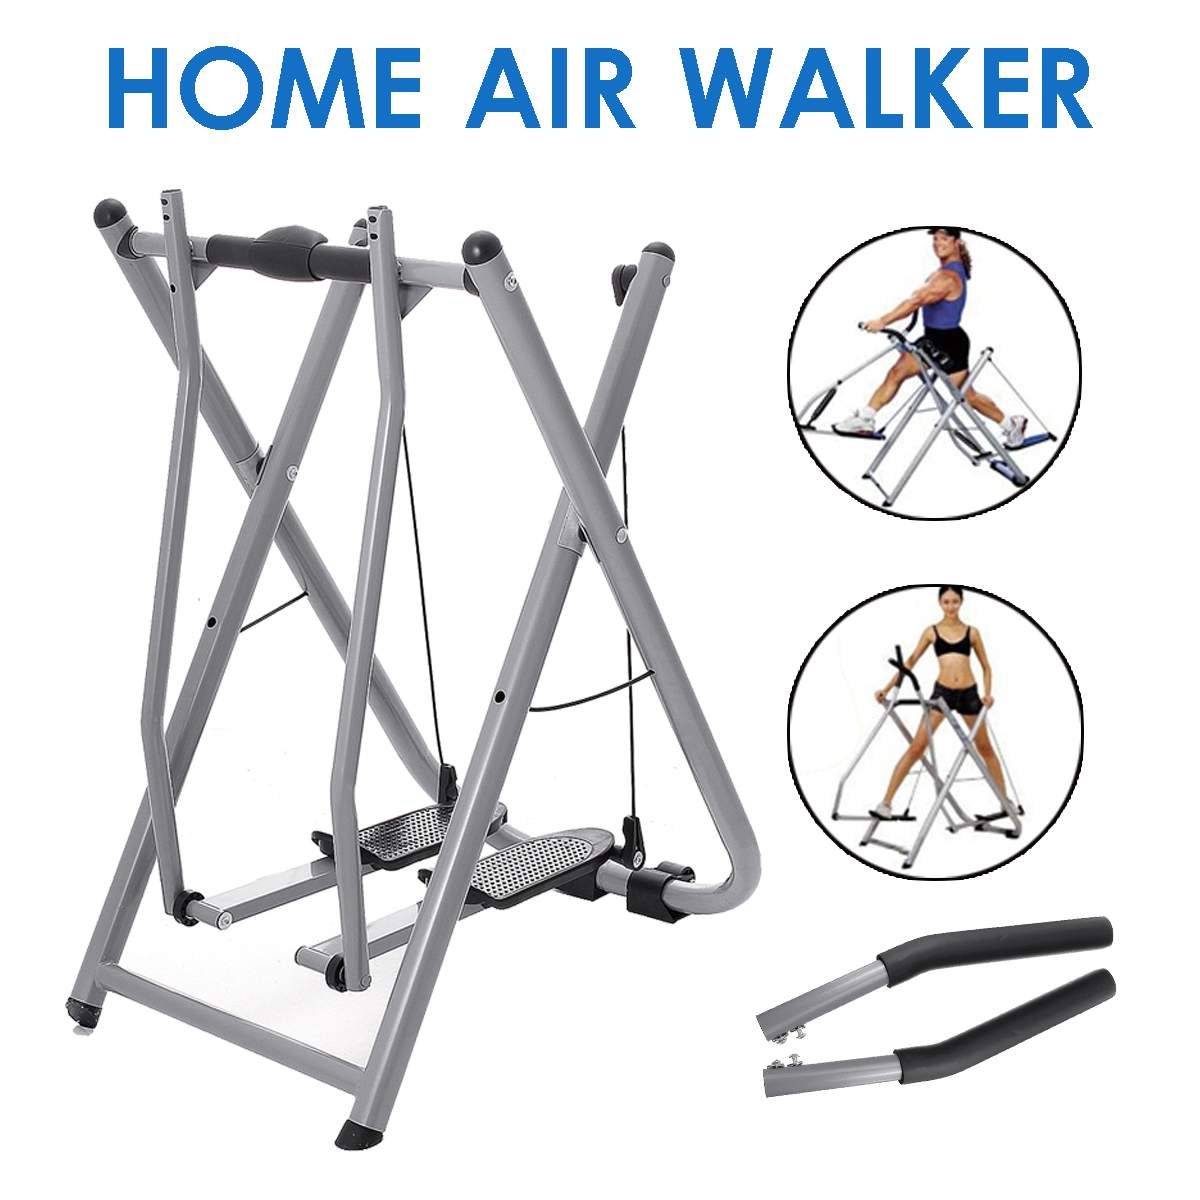 Foldable Pipe Air Walker Steppers Home Gym Elliptical Exercise Machine Handrail Slimming Workout Tra